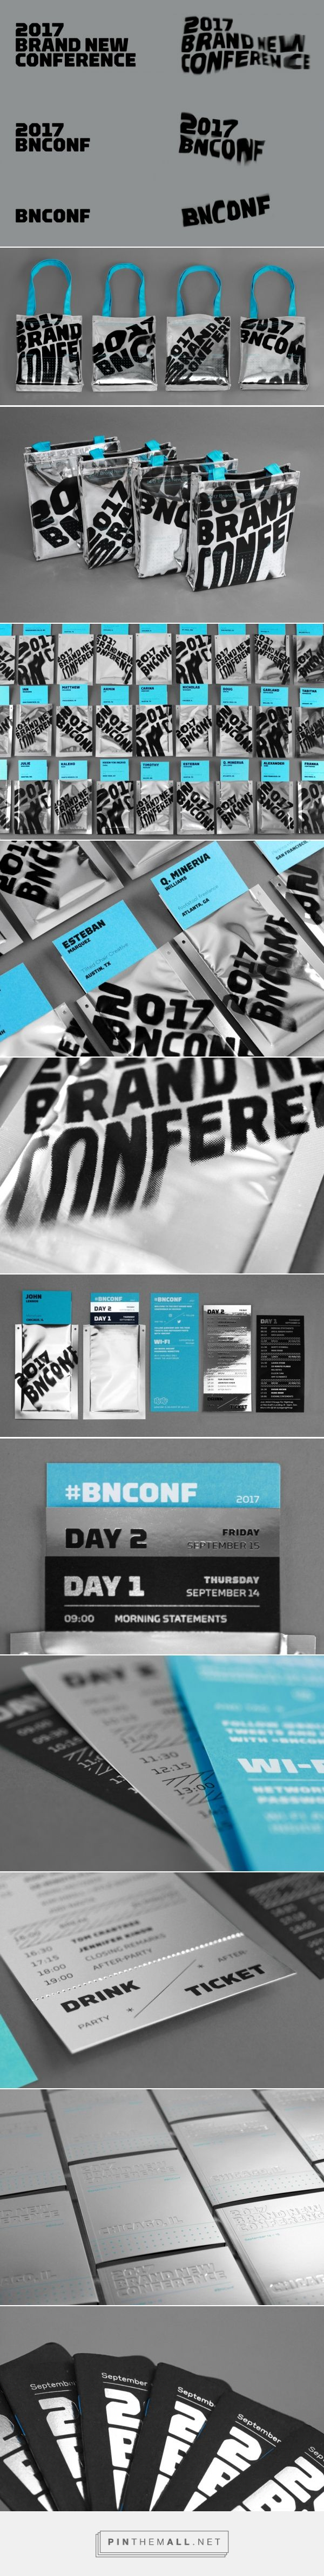 Brand New: New Logo and Identity for 2017 Brand New Conference by UnderConsideration... - a grouped images picture - Pin Them All